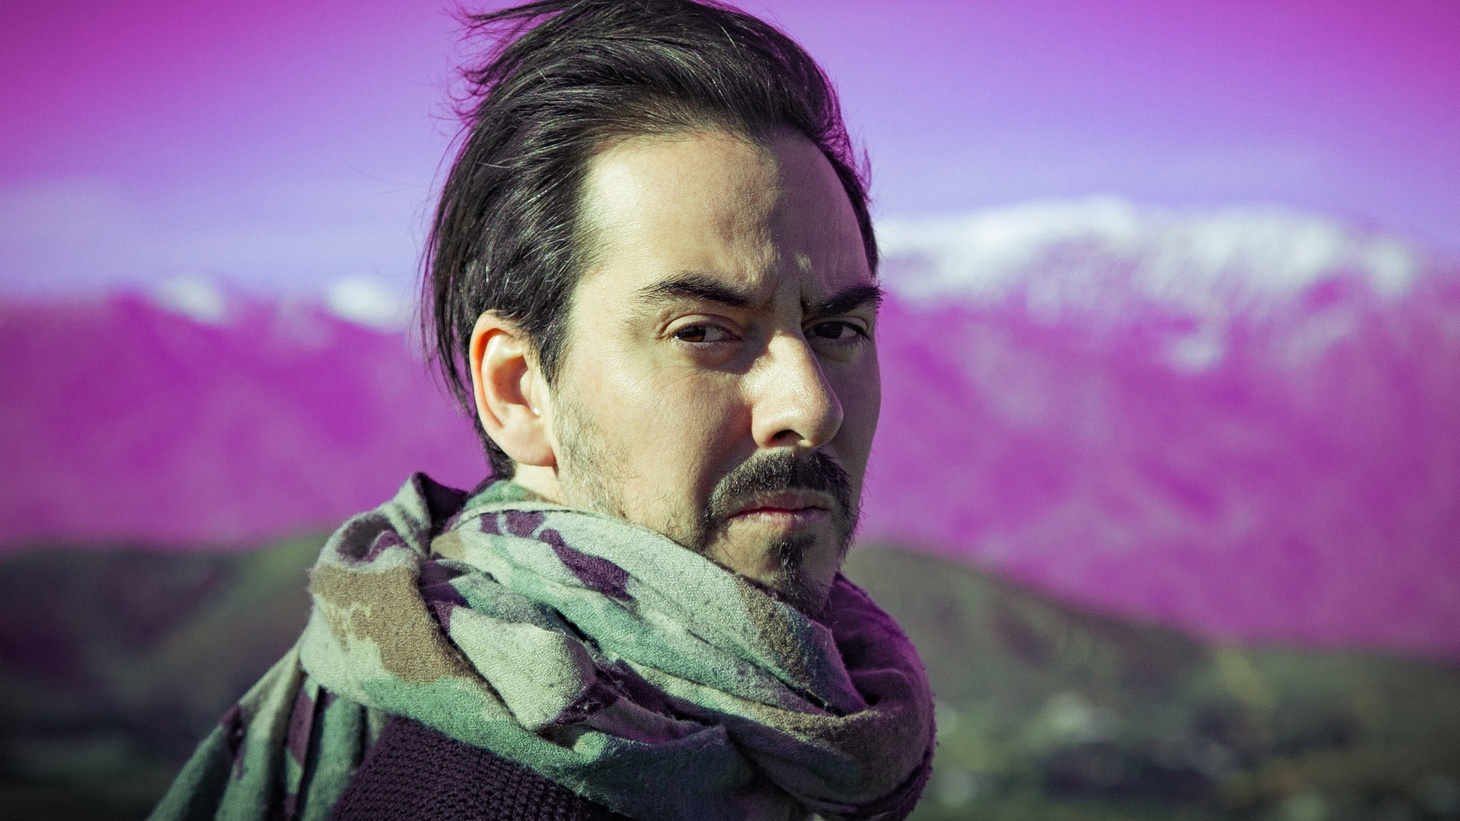 A talented musician in his own right, Dhani Harrison has focused his talents as a composer of soundtracks. His collaborations showcase his varied and eclectic range in his work with The Wu-Tang Clan, Pearl Jam and Prince.